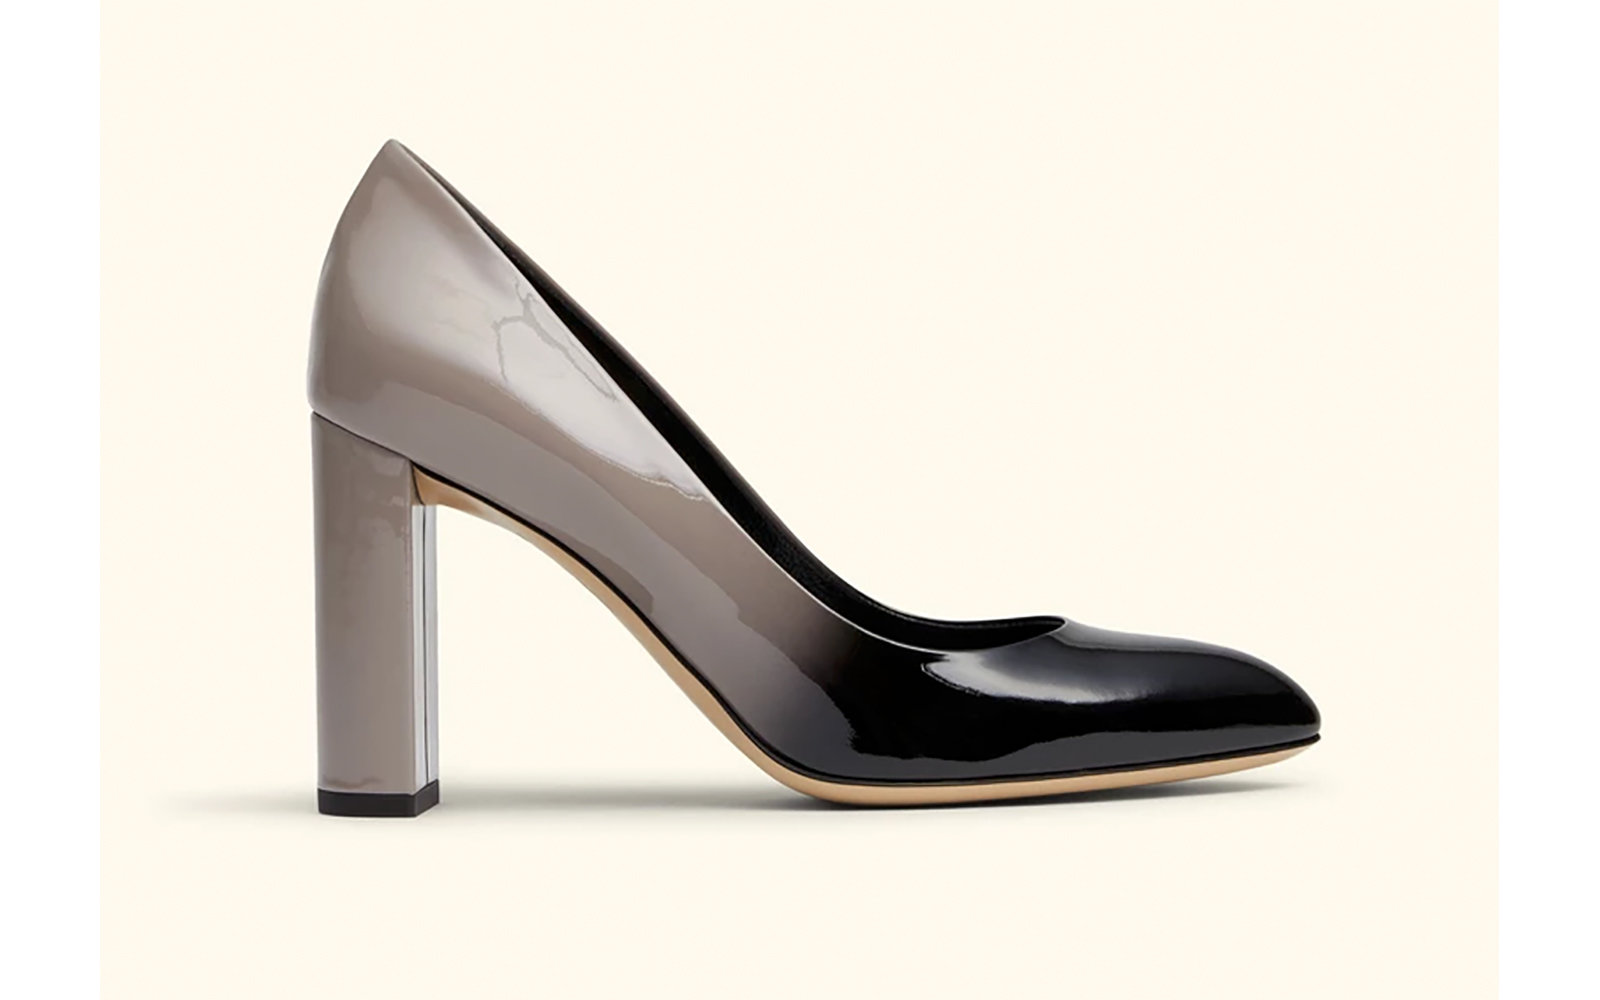 Most Comfortable Block Heels: M.Gemi The Lustro Heel